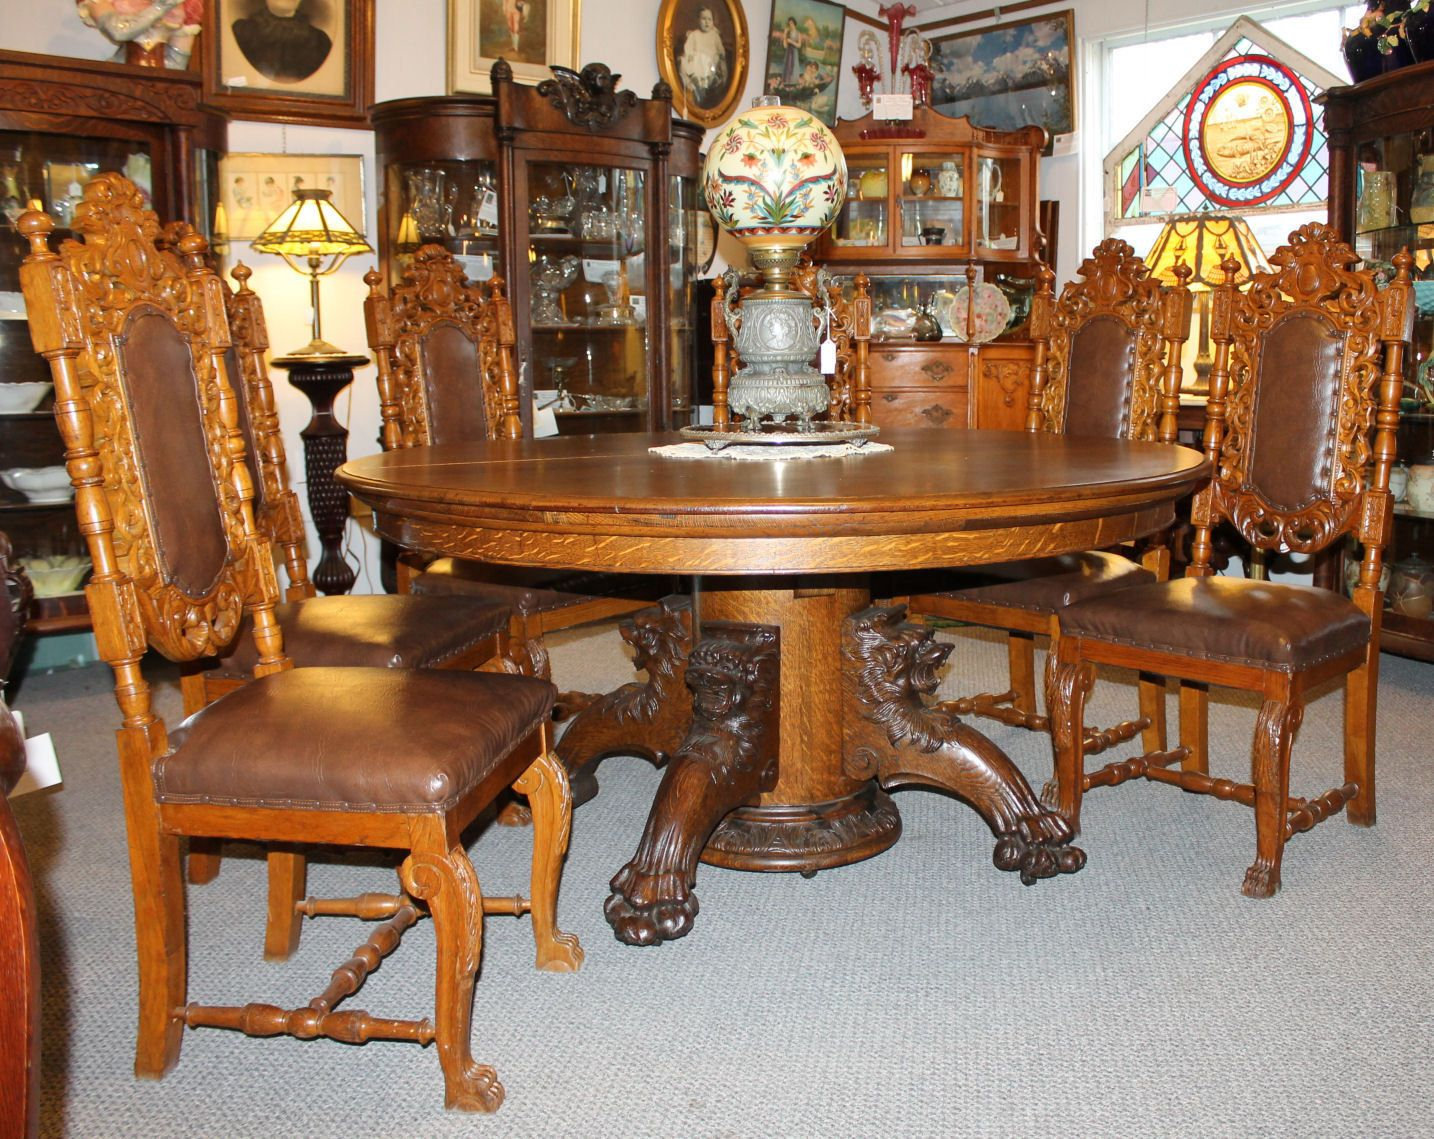 Antique Round Oak Dining Table With Carved Lion Headed